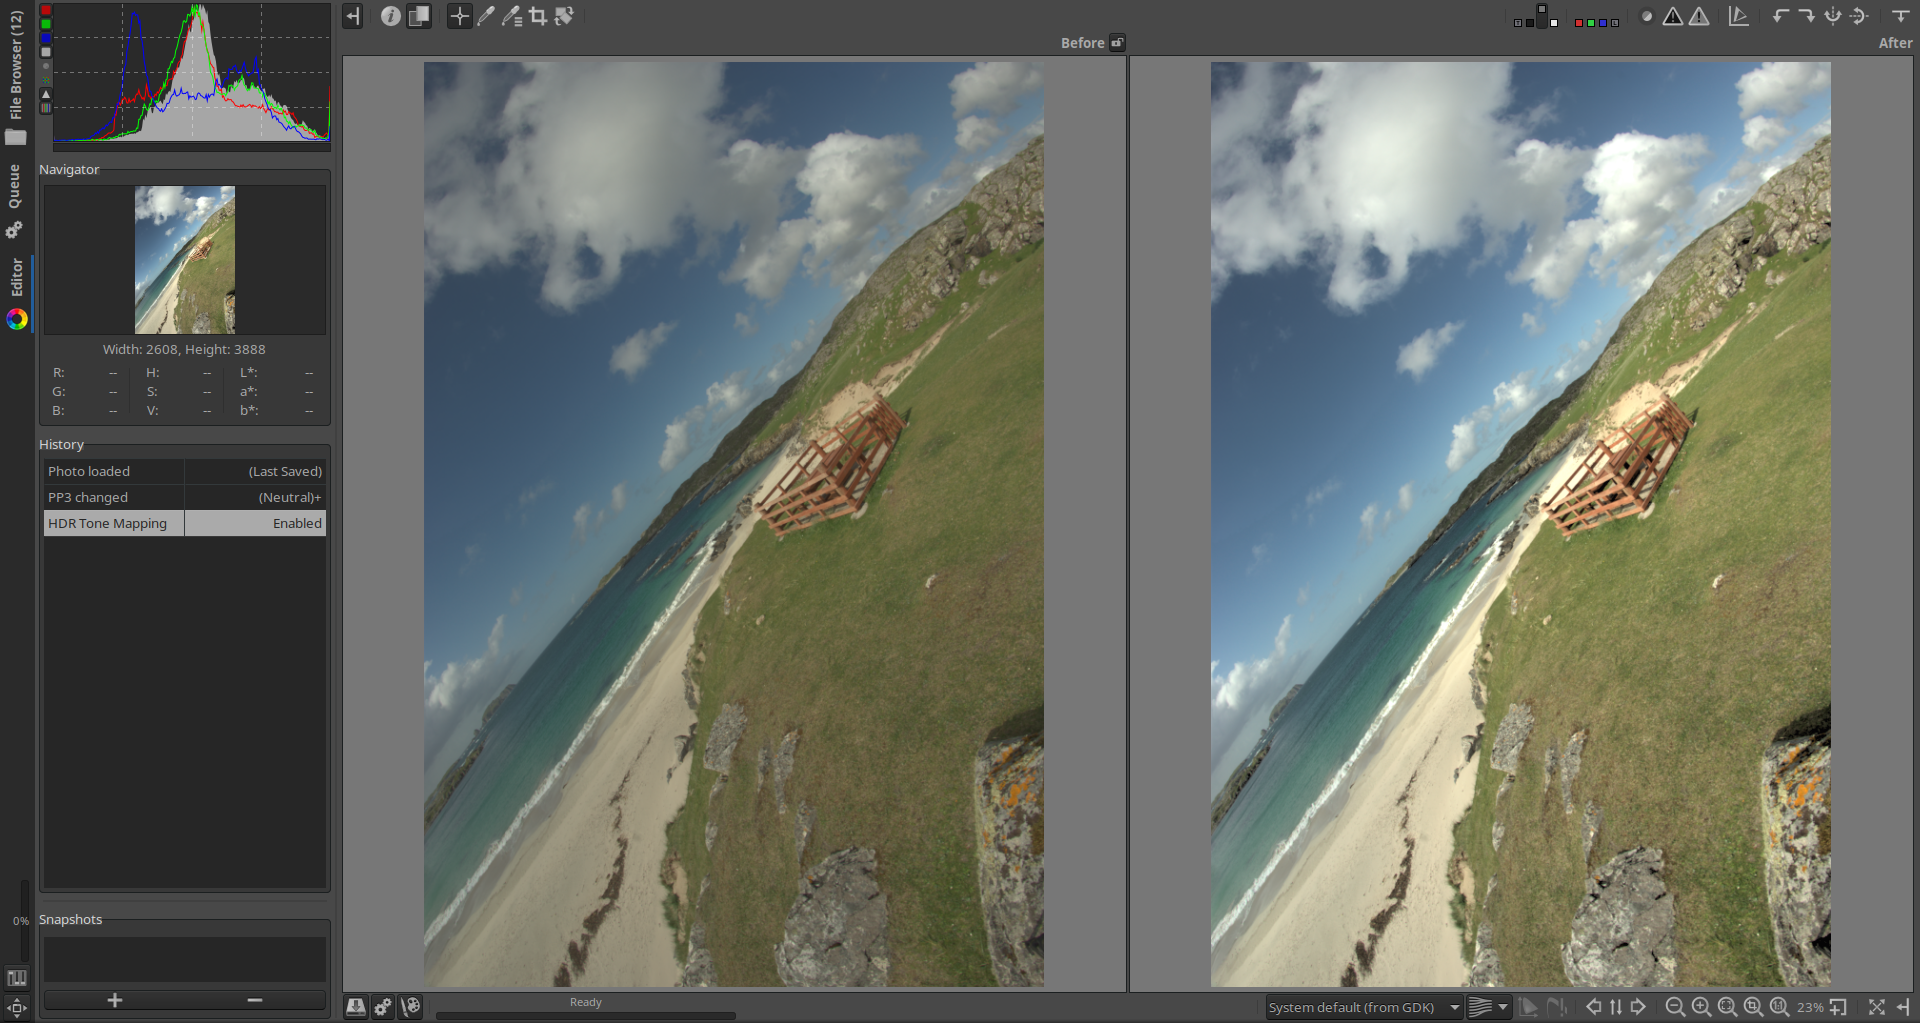 Does HDR Tone Mapping start too aggressively · Issue #4280